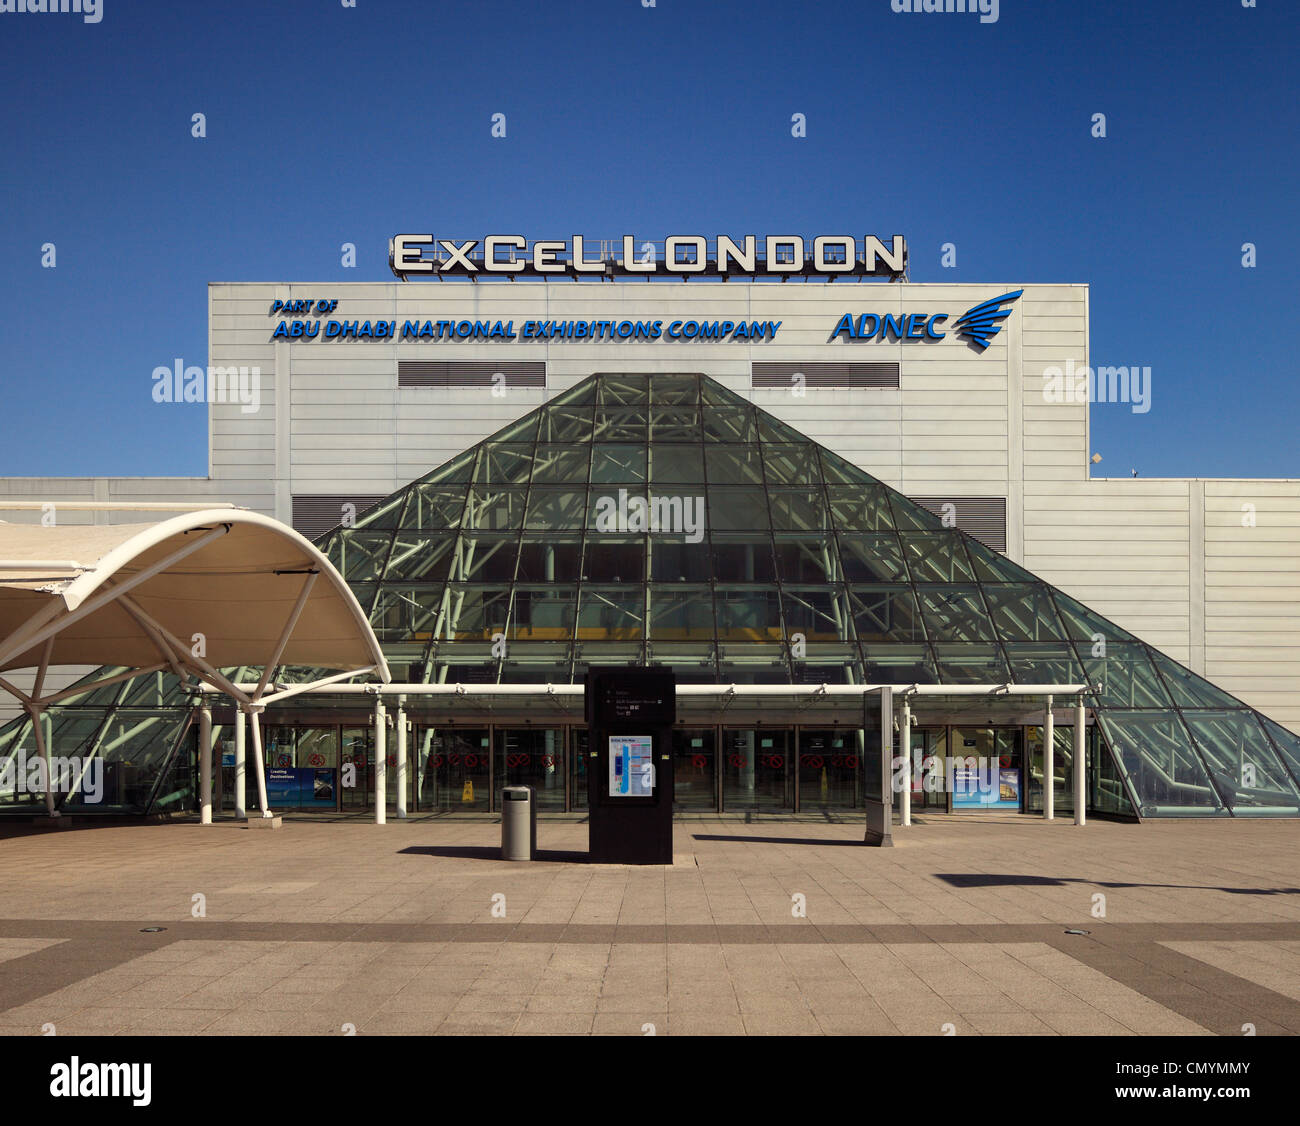 Excel centre, Royal Victoria Docks, London. - Stock Image